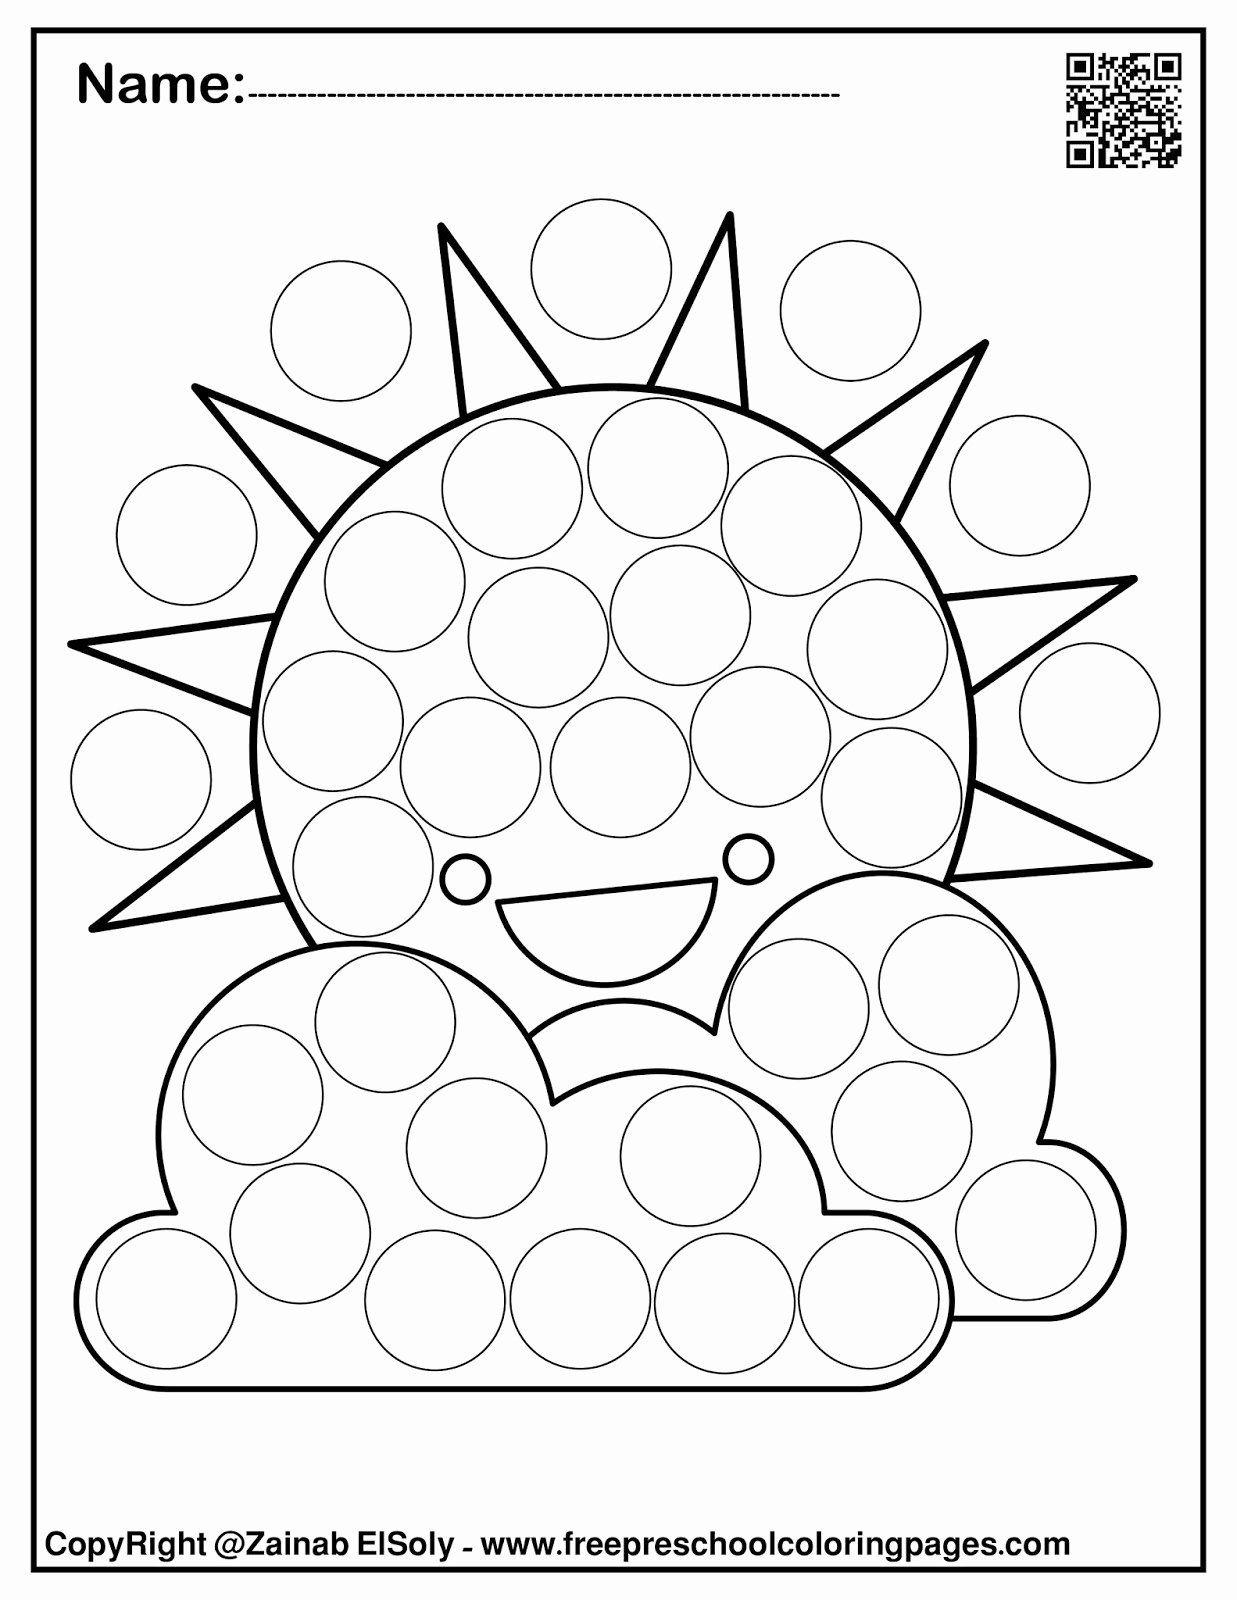 Dot to Dot Art Printables New Dot Art Worksheets